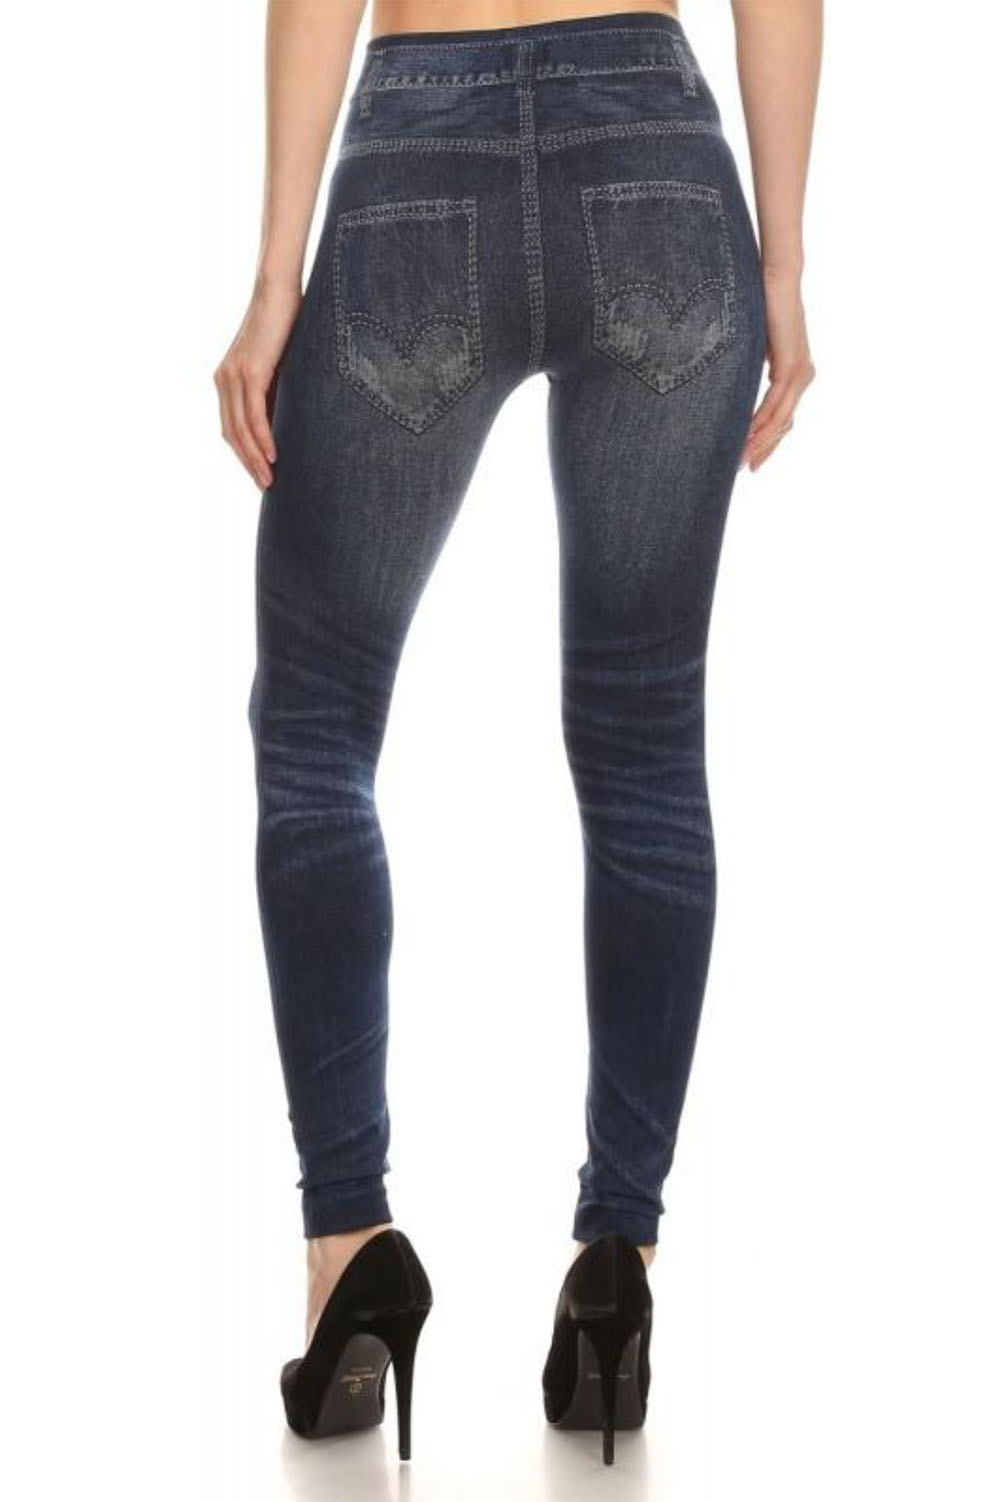 Stretch pants that look like jeans